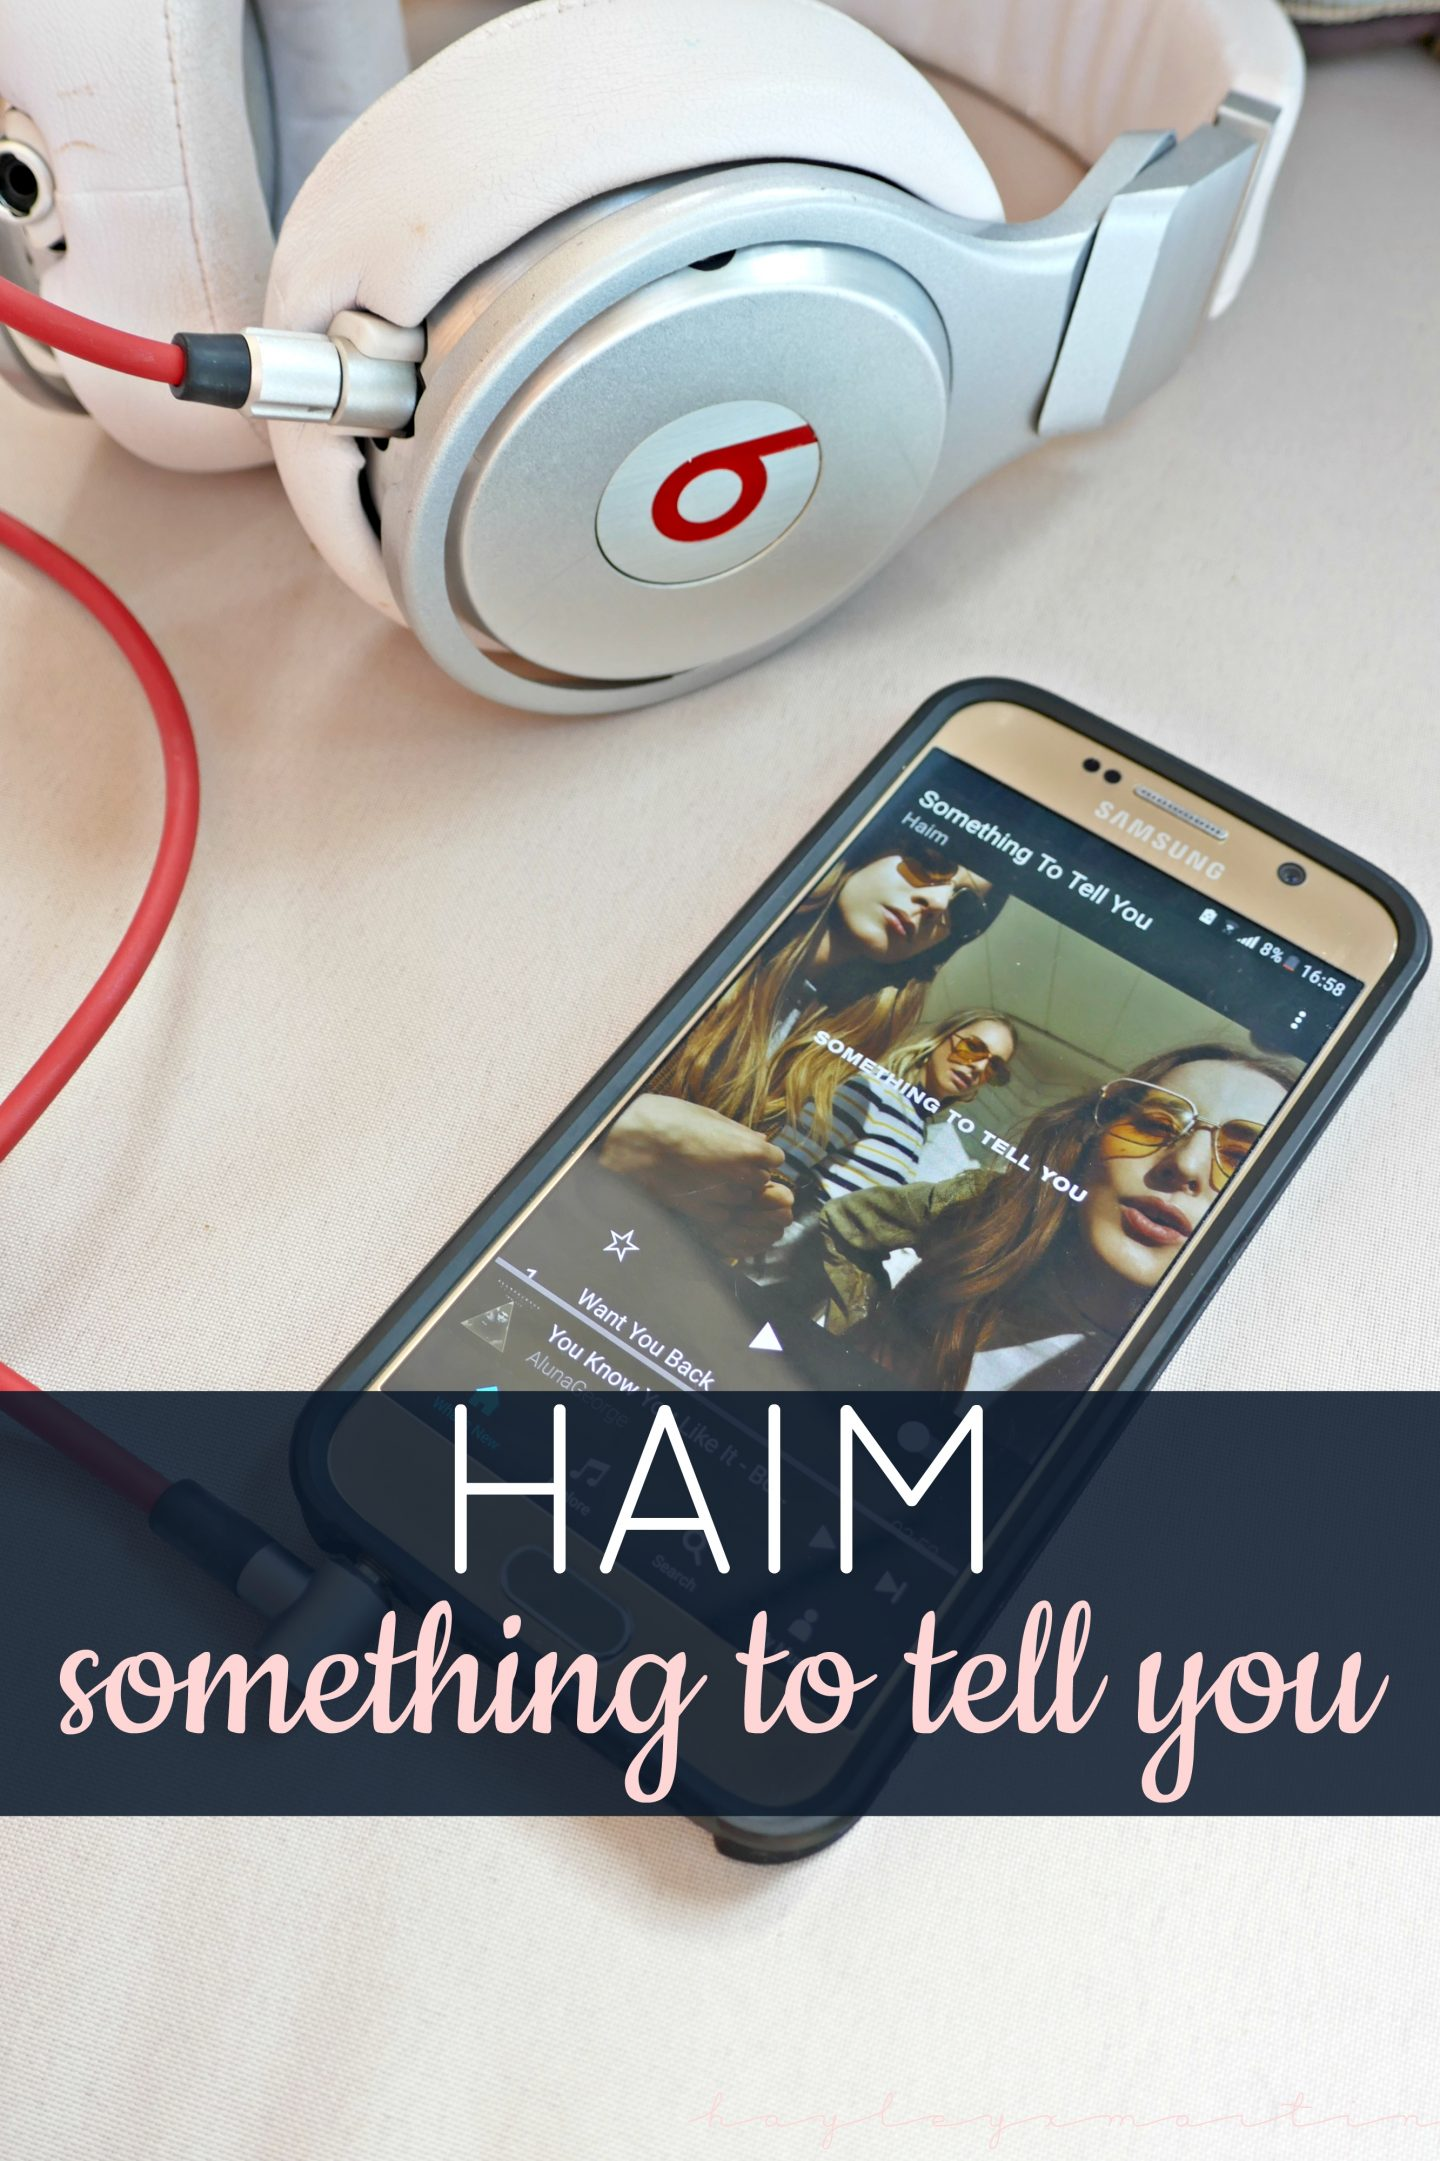 HAIM NEW ALBUM - SOMETHING TO TELL YOU